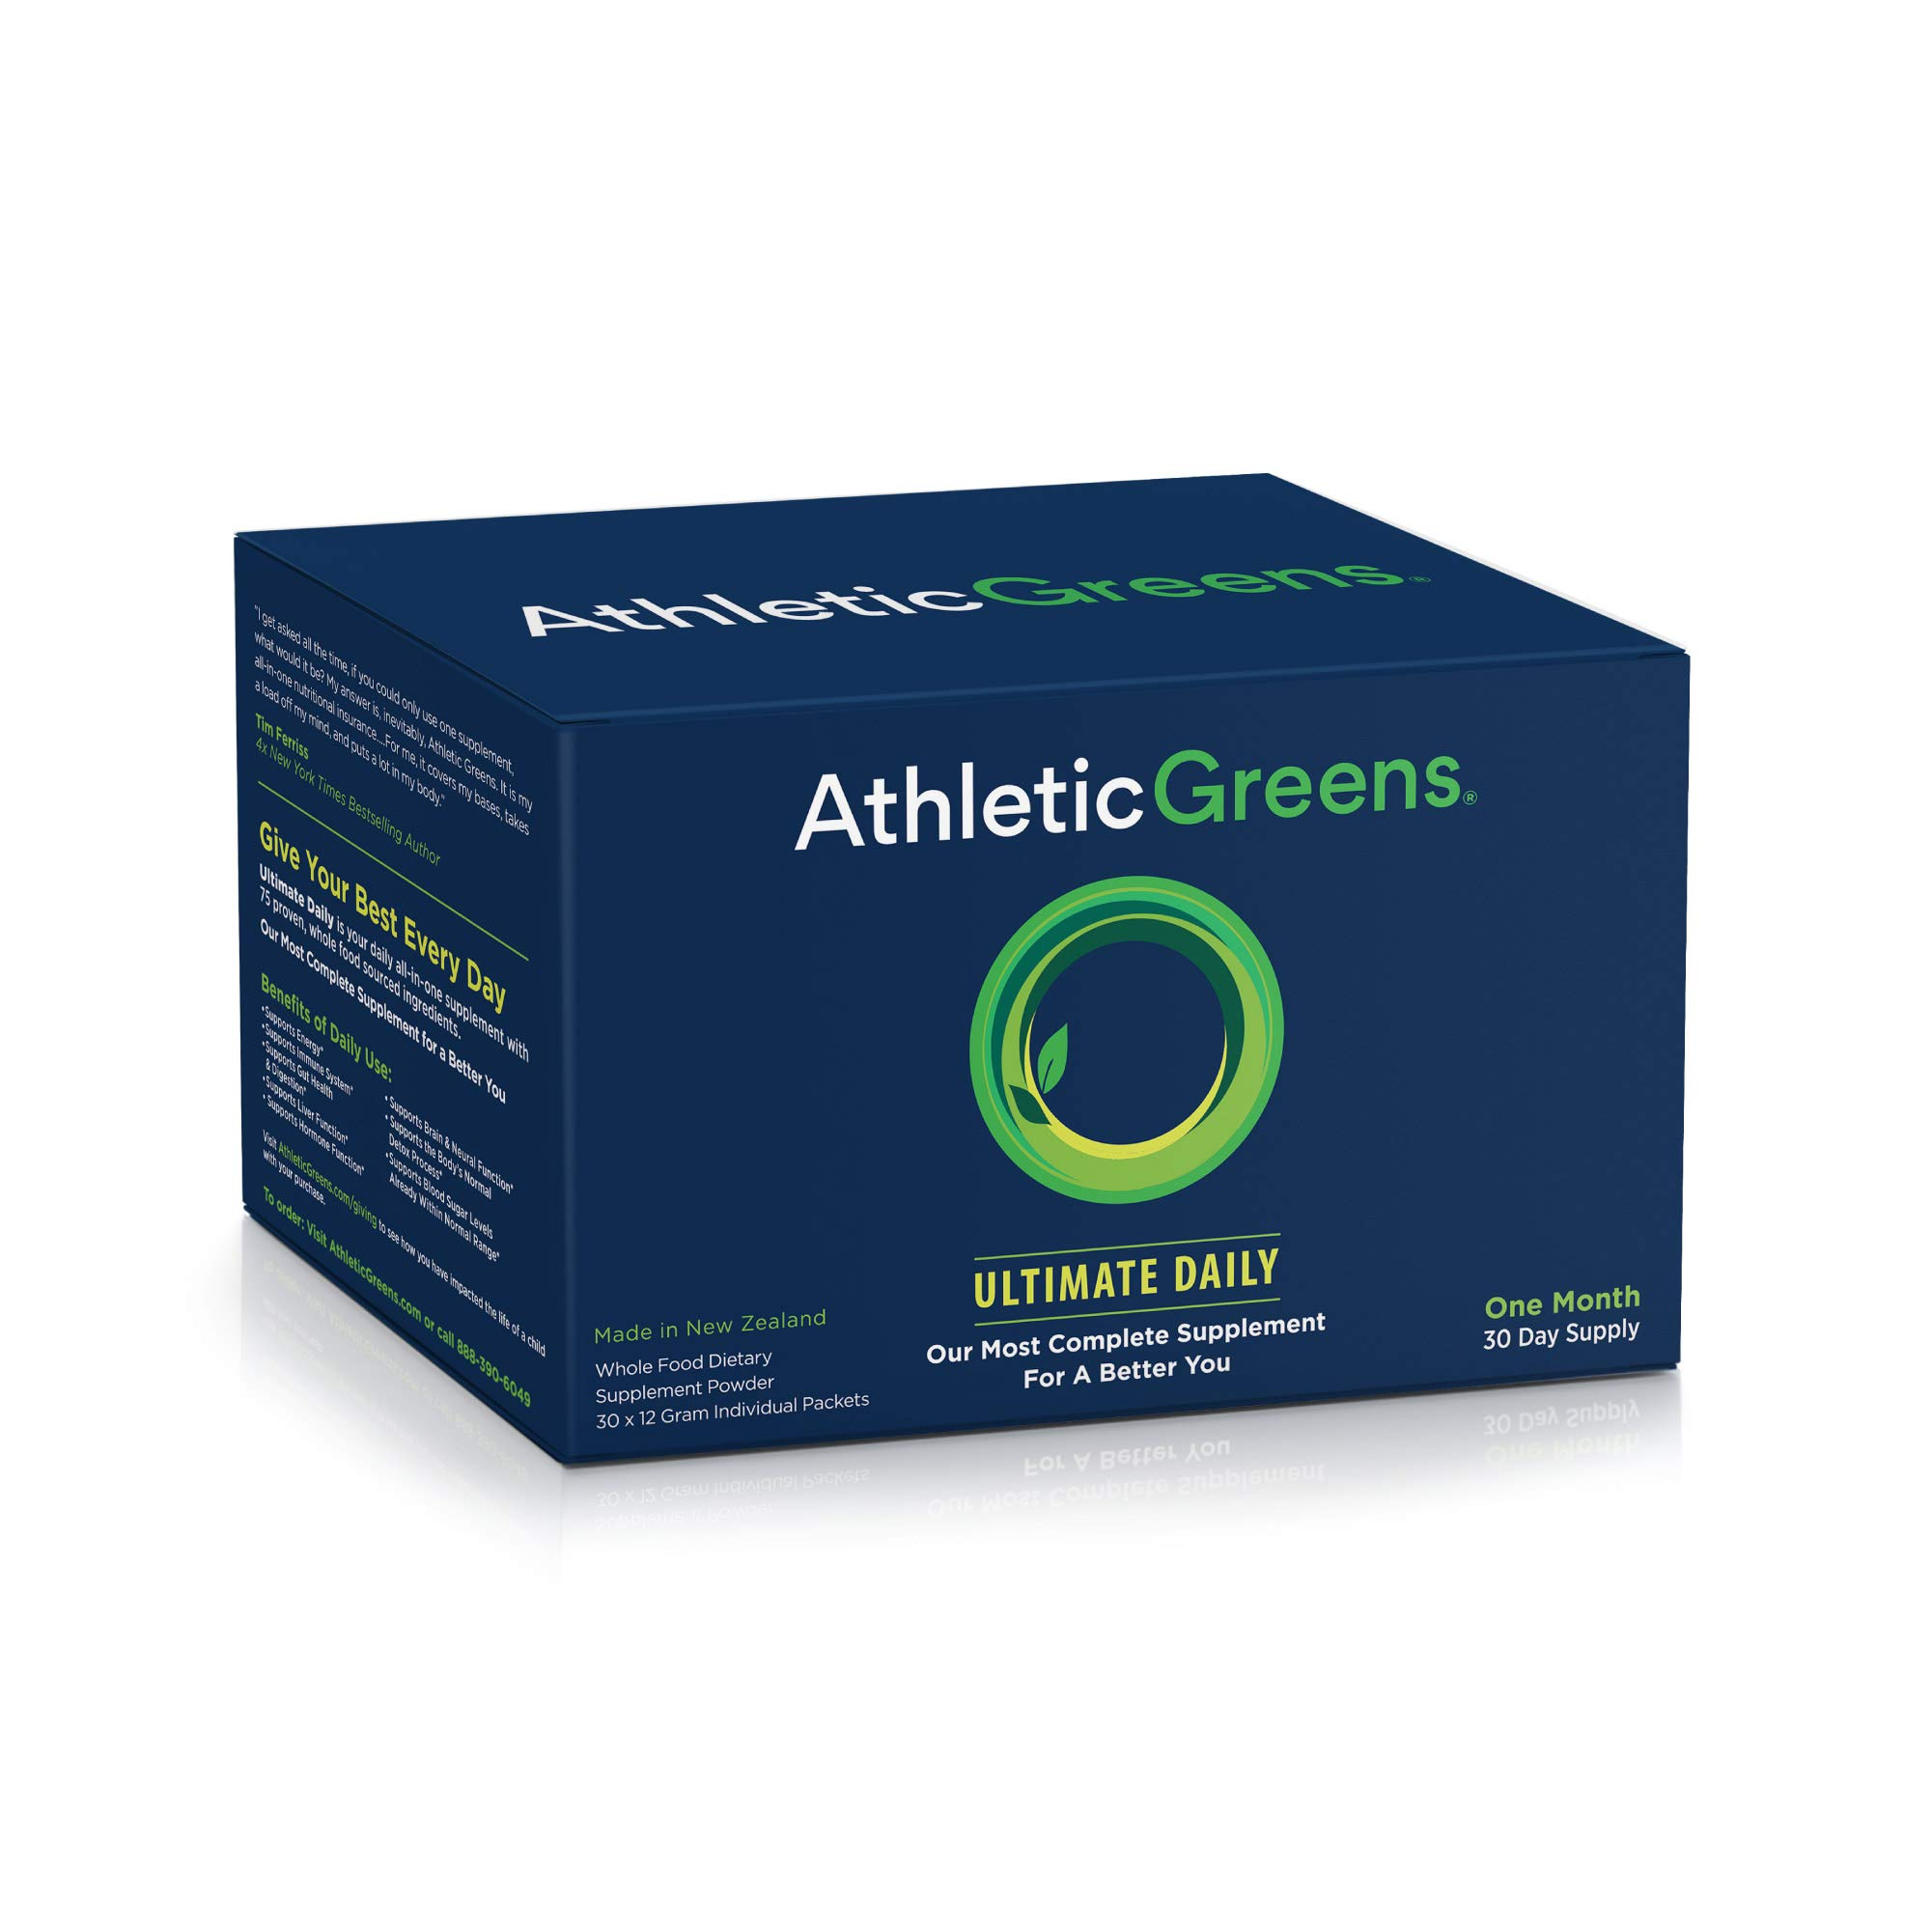 Athletic Greens Ultimate Daily, Whole Food Sourced All in One Greens Supplement, Superfood Powder, Gluten Free, Vegan and Keto Friendly, 30 Individual Travel Packs by Athletic Greens